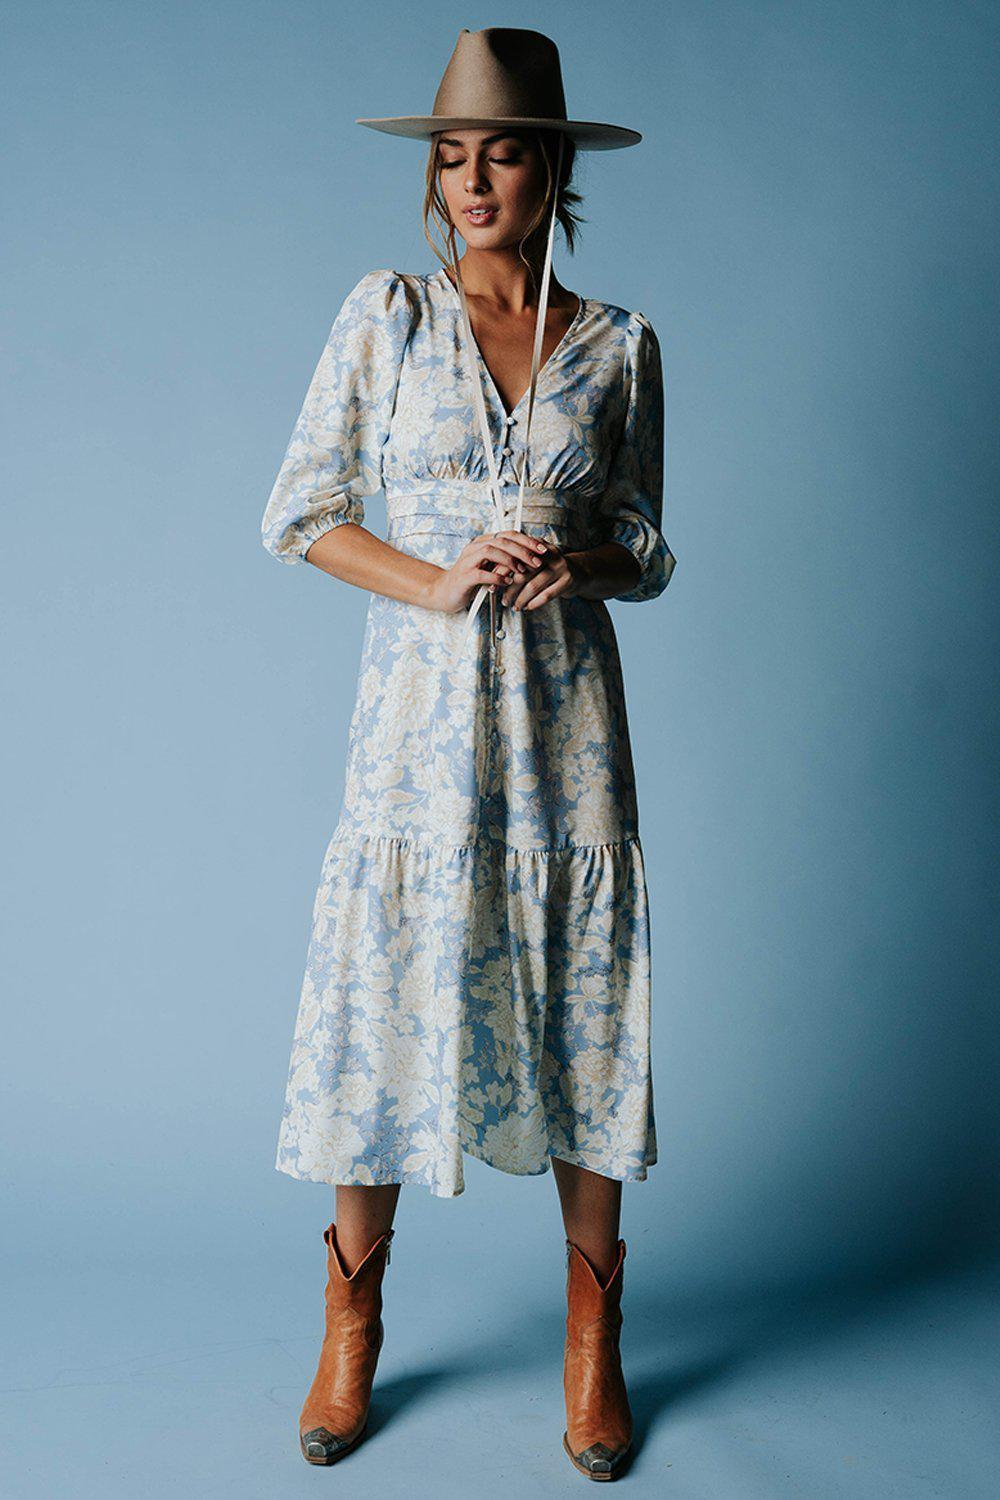 best_seller, Beauty and a Beat Floral Maxi Dress - FINAL SALE, Dress, women's clothing, dresses, skirts, coats, jackets, shoes, boots, tops, tee shirts, jeans, free people, levi's, rollas, jumpsuits, bottoms, tops, sweaters, pullovers, pants, shorts, sweats,.